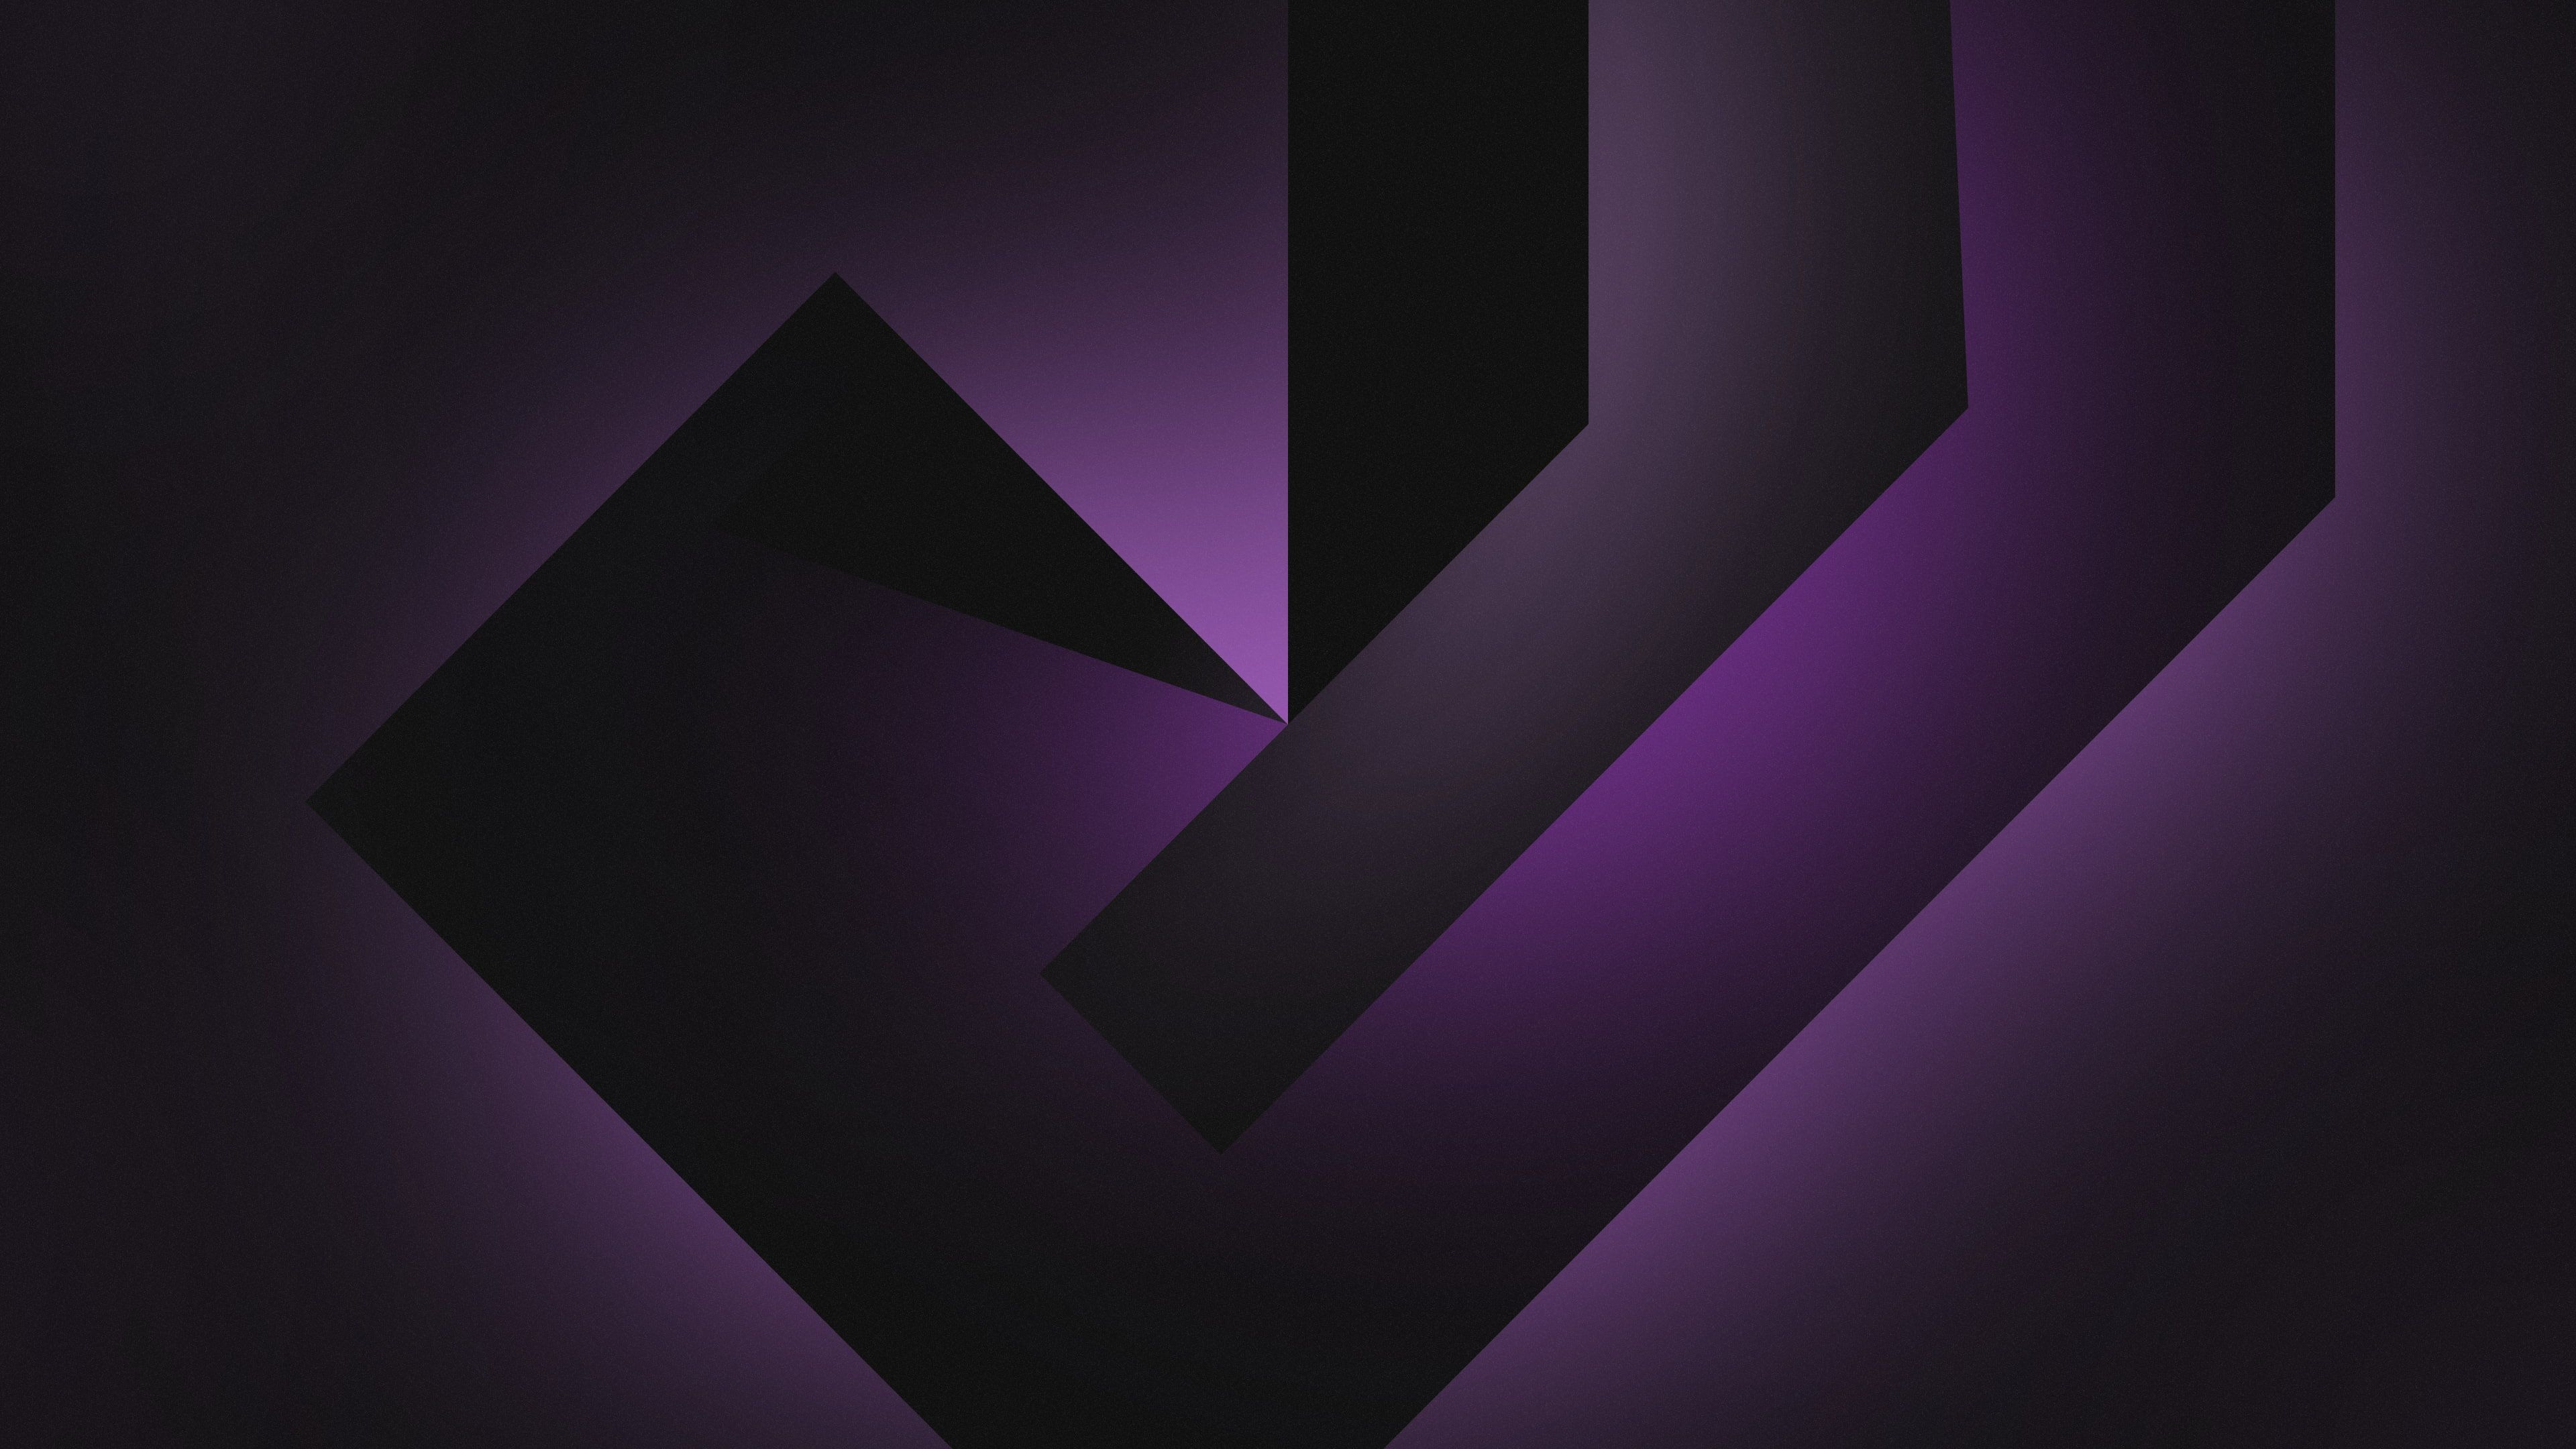 4k Dark Background Gradient Geometric Shapes Violet Black Purple 4k Wallpaper Hdwallpaper Desktop In 2020 Dark Purple Wallpaper Purple Wallpaper Wallpaper